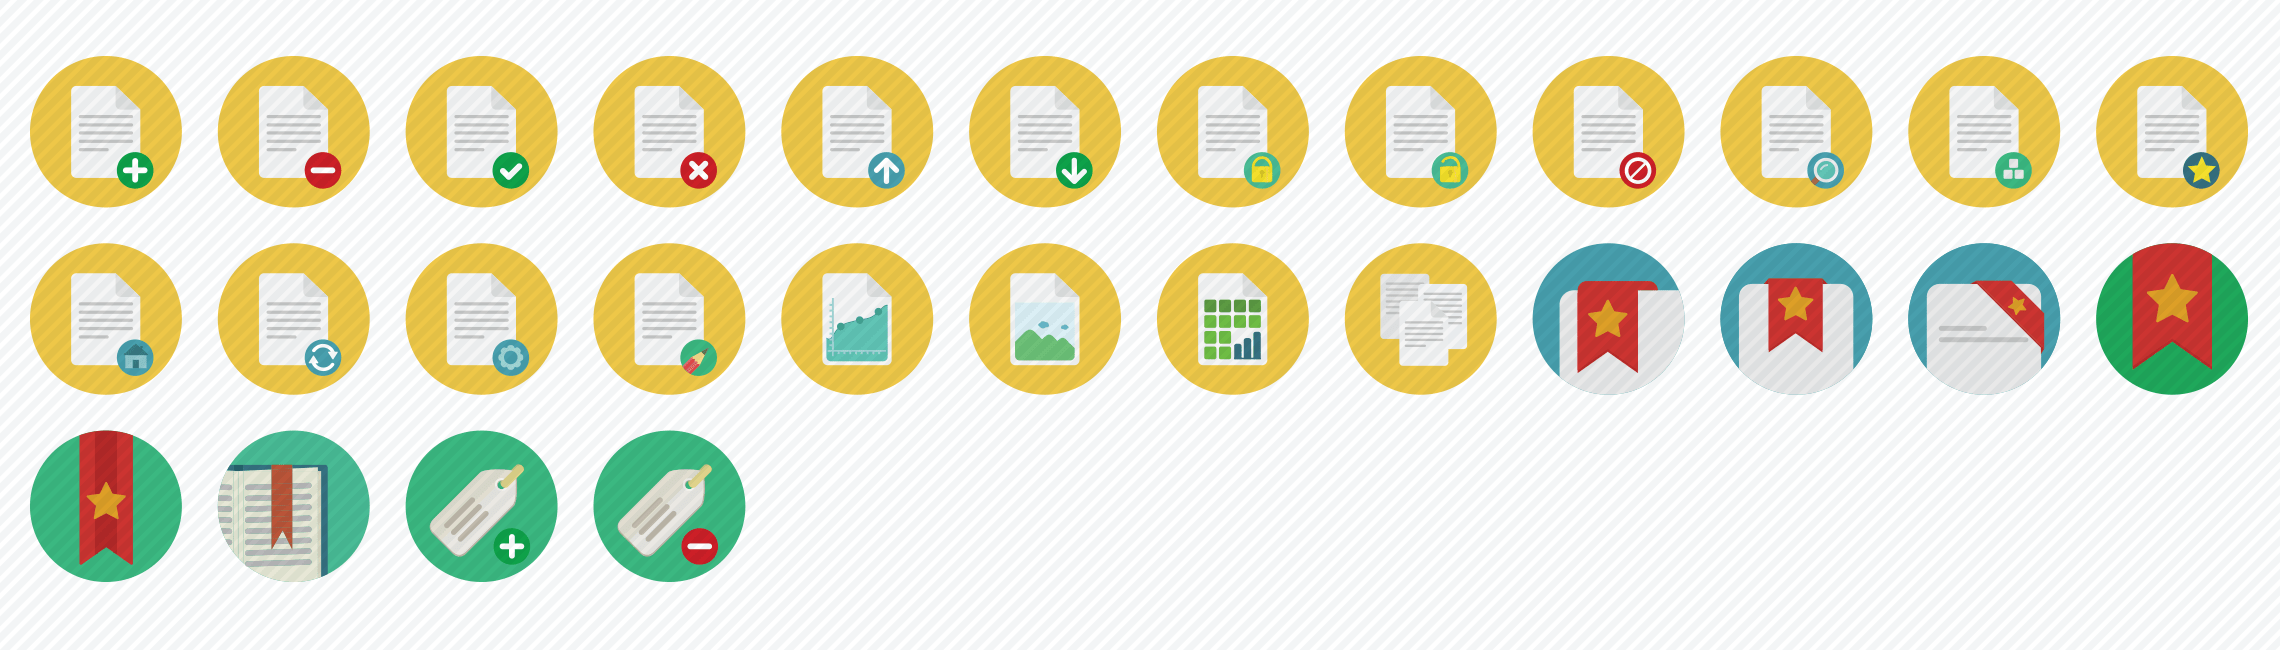 documents-flat-icons-set